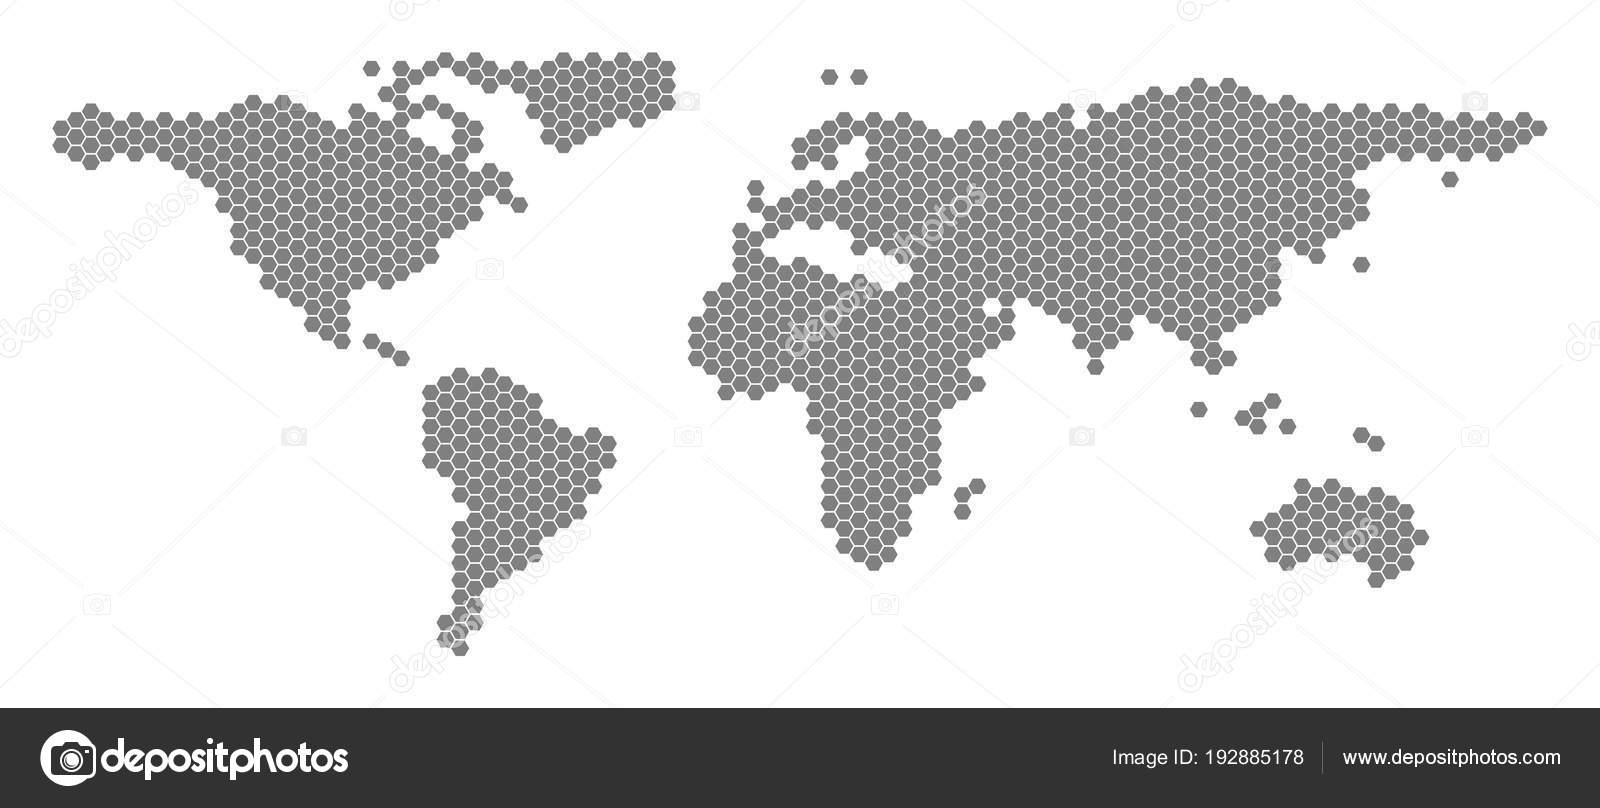 Gray hexagon world map stock vector ahasoft 192885178 gray hexagon world map vector geographic map in grey color on a white background vector composition of world map made of hexagonal elements gumiabroncs Gallery